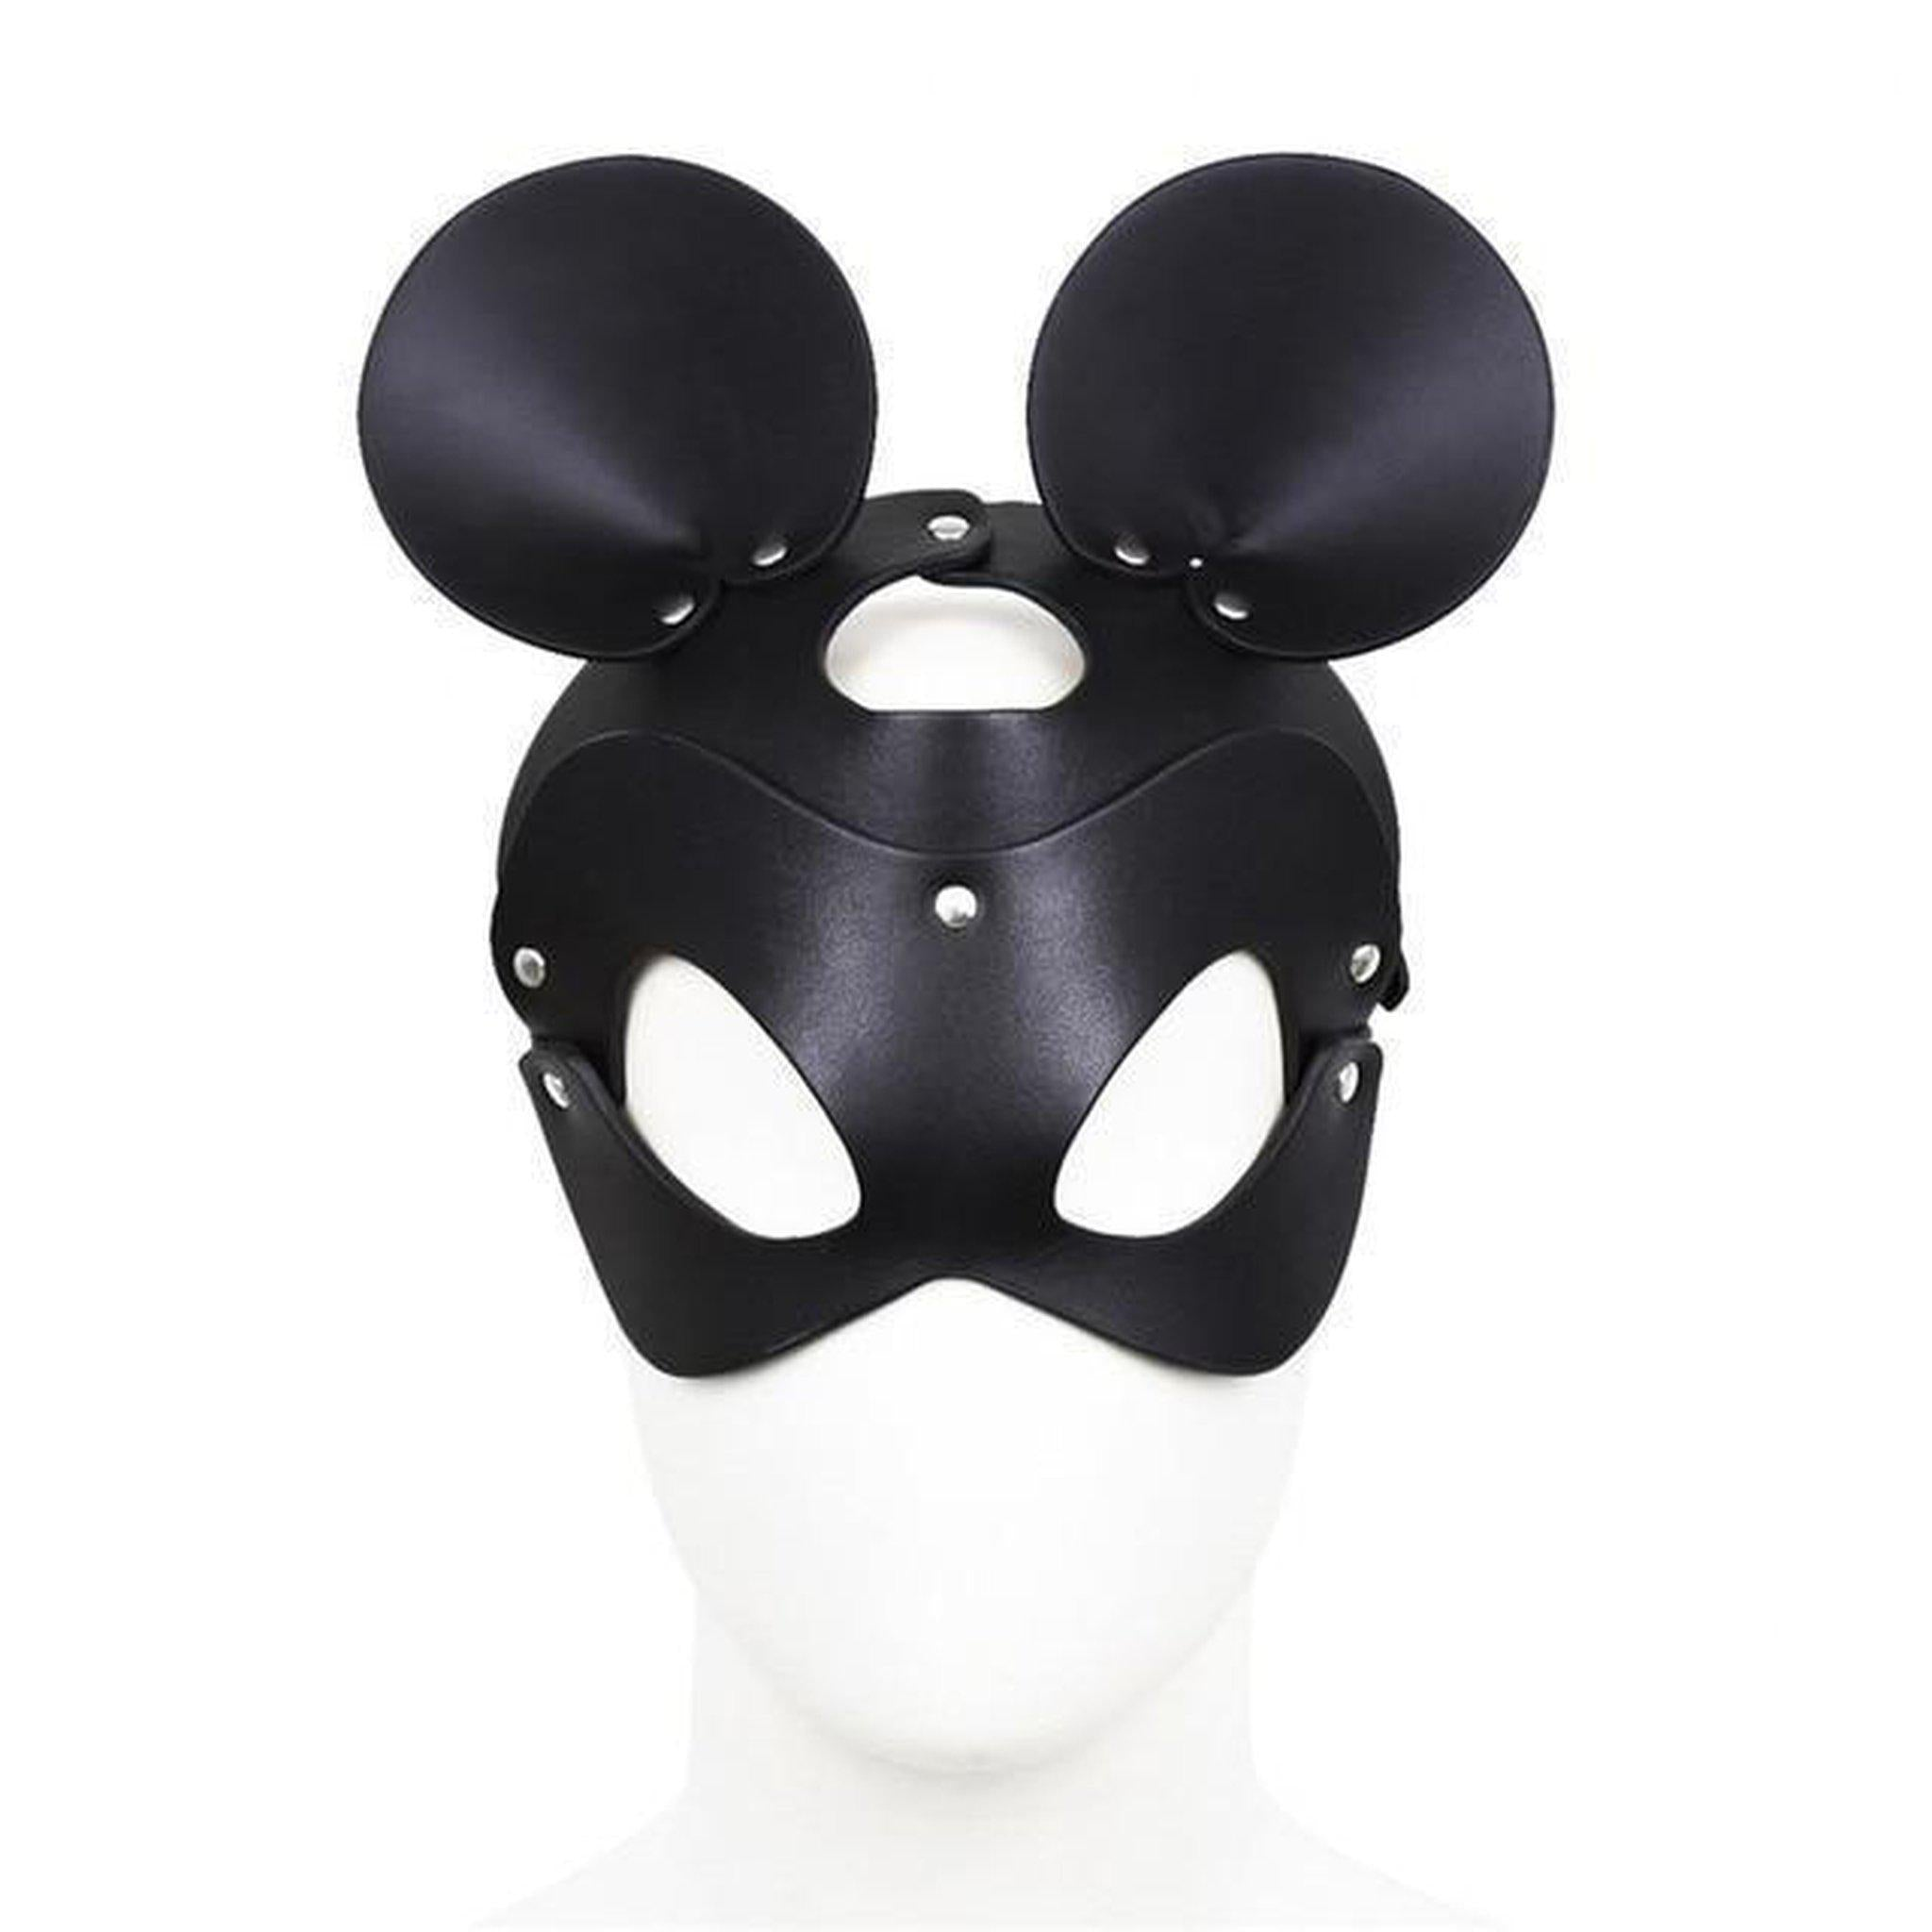 Naughty Kitty Leather Mask-Good Girl xox-Mouse-buy-bdsm-bondage-gear-tools-toys-online-good-girl-xox